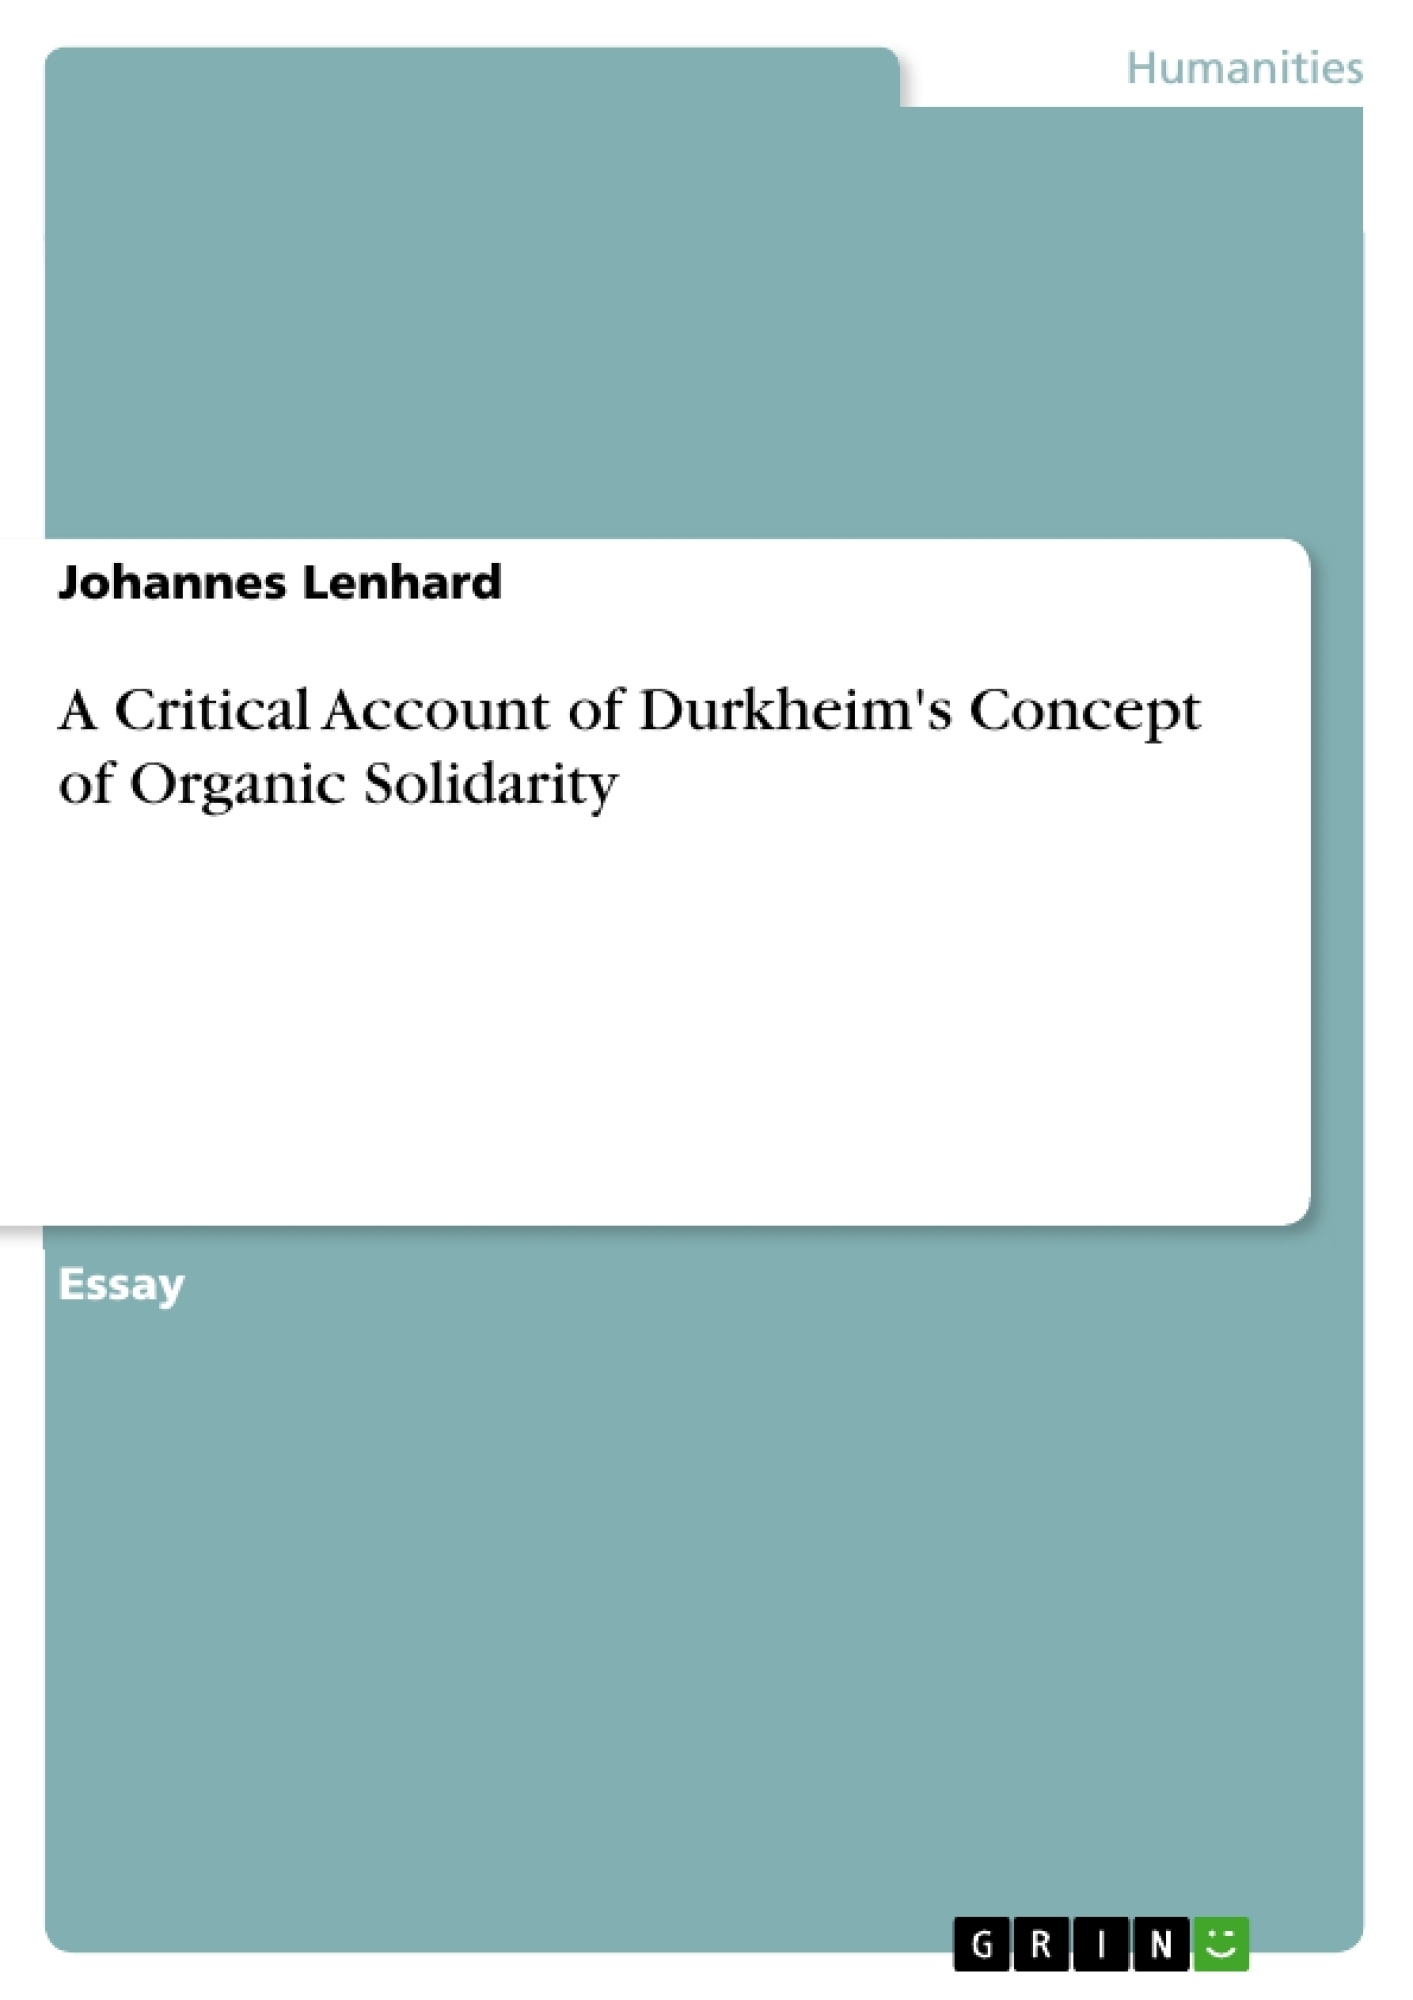 durkheim mechanical and organic solidarity